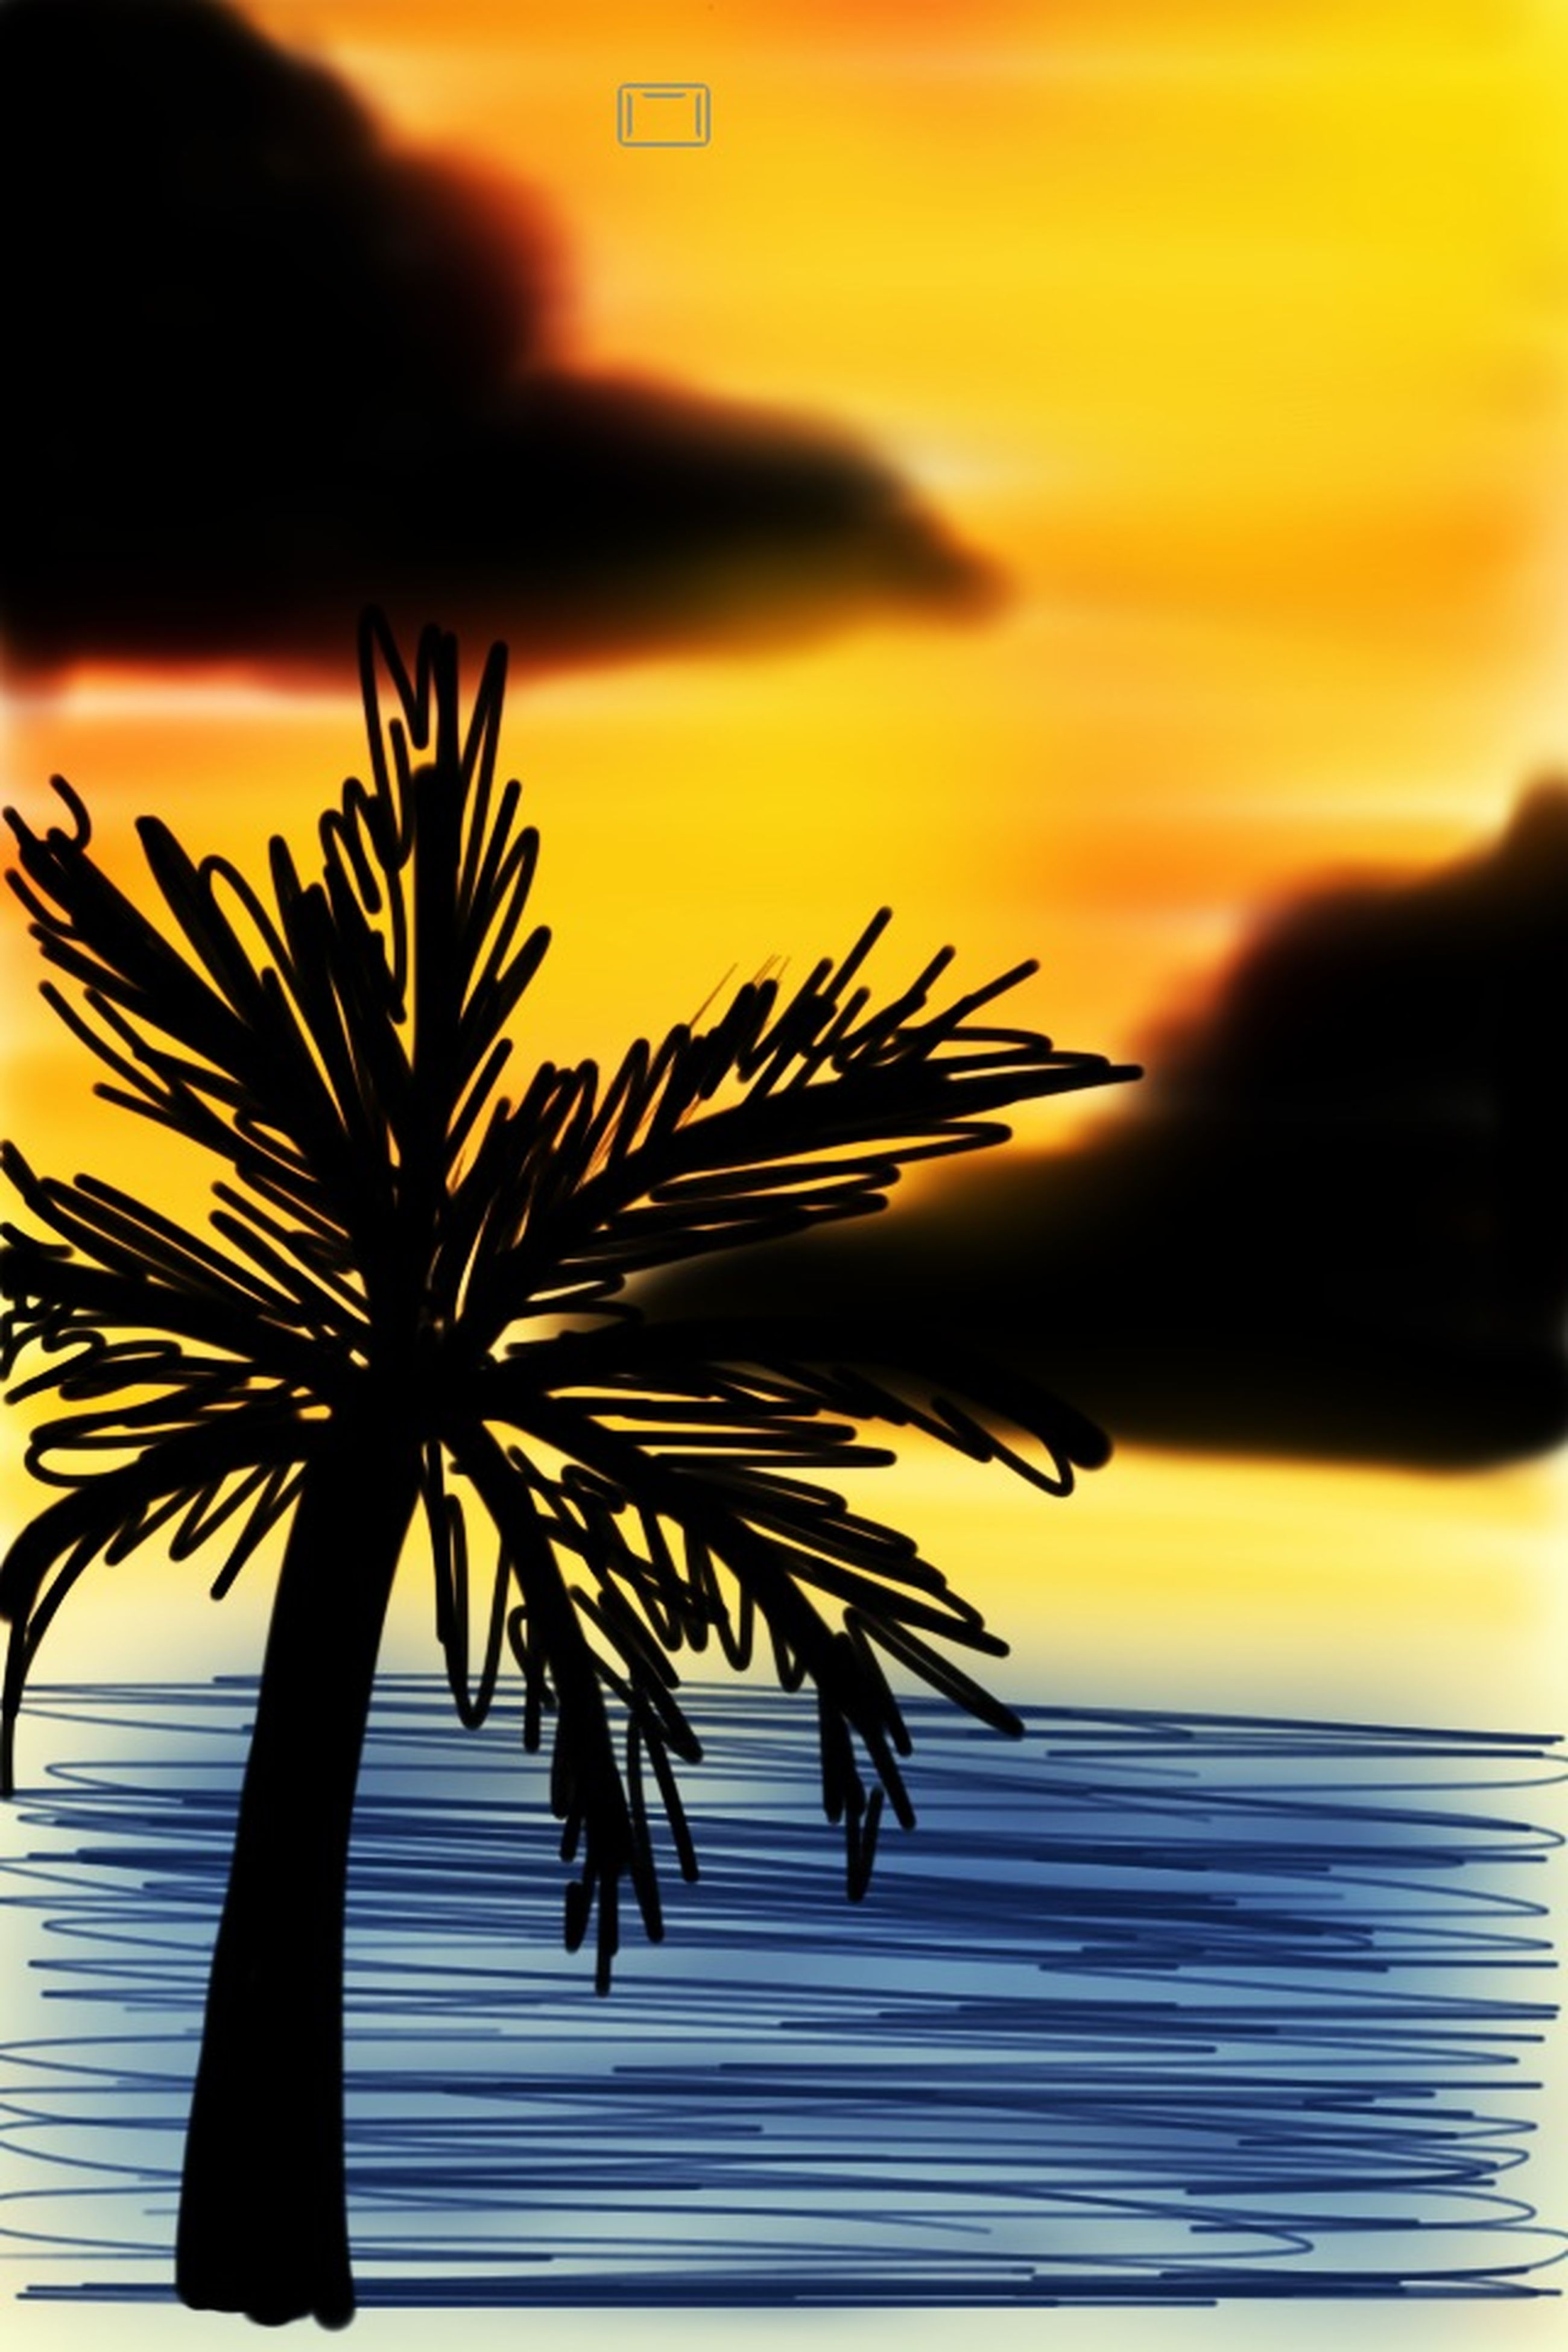 palm tree, sunset, silhouette, sea, orange color, sky, water, beach, horizon over water, beauty in nature, nature, scenics, tranquility, tranquil scene, growth, outdoors, palm leaf, idyllic, incidental people, tree